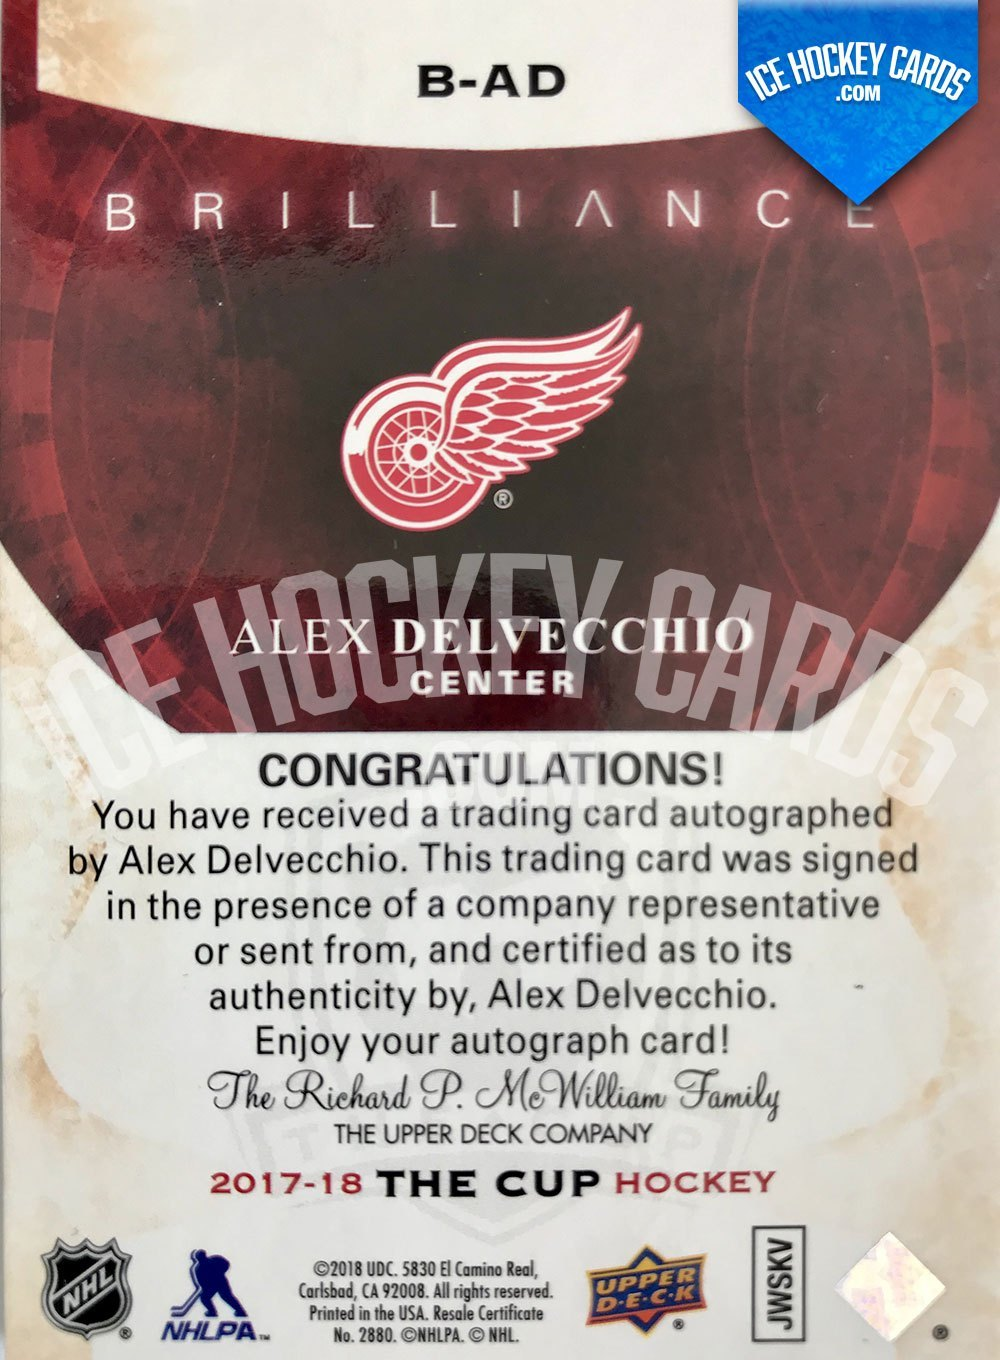 Upper Deck - The Cup 2017-18 - Alex Delvecchio Brilliance Autographed Card back RARE